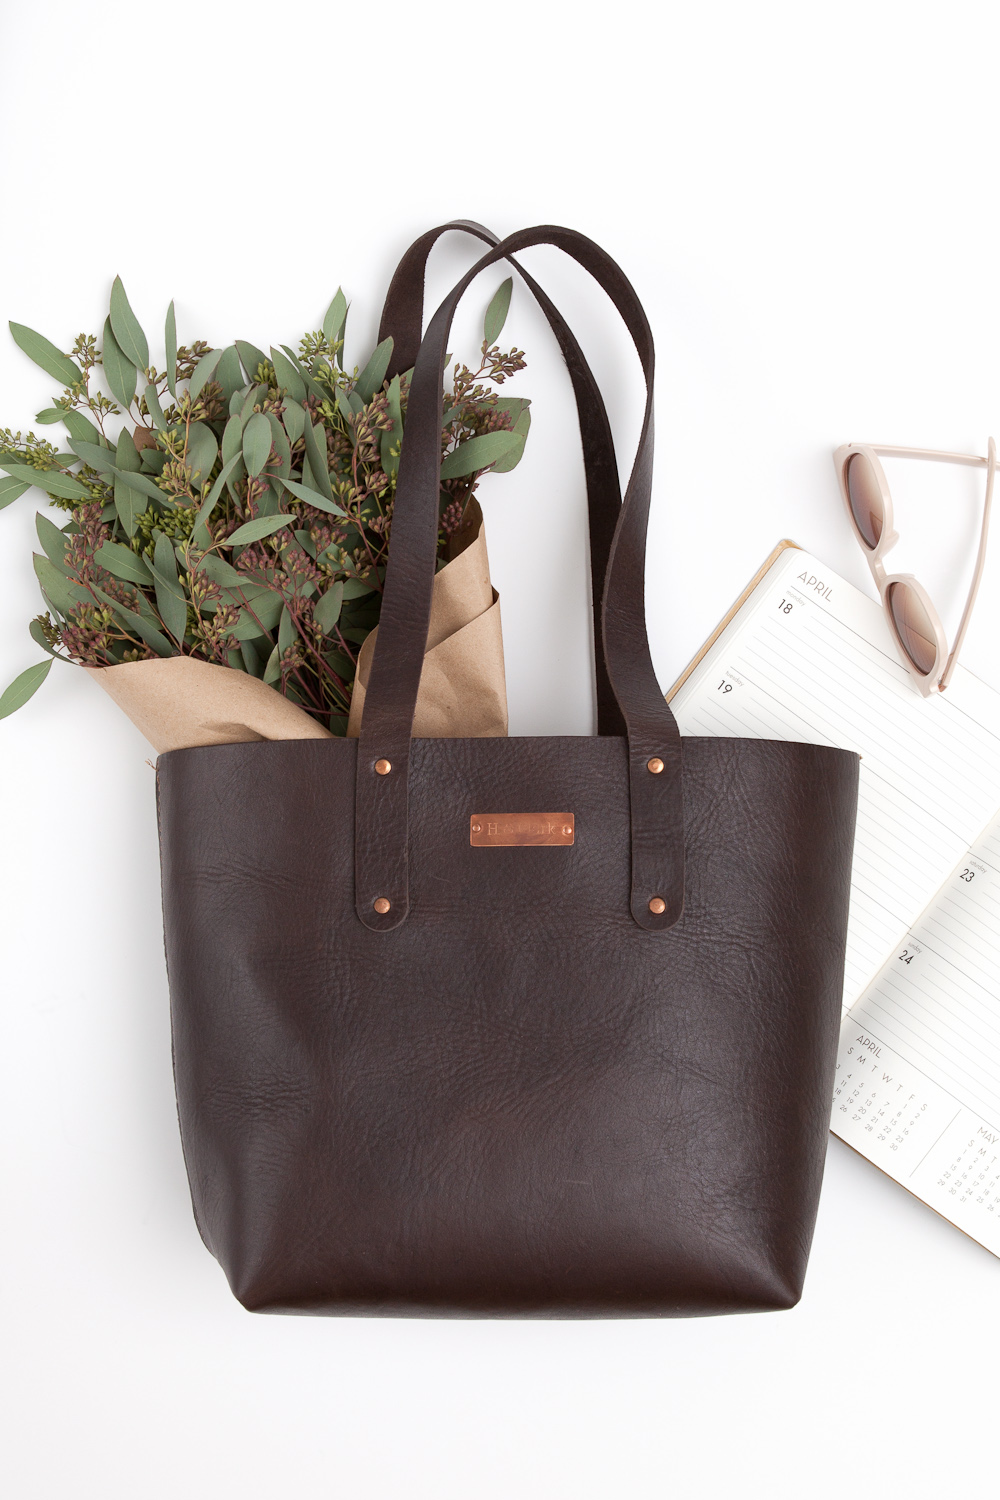 The Holden Tote by H. & Clark